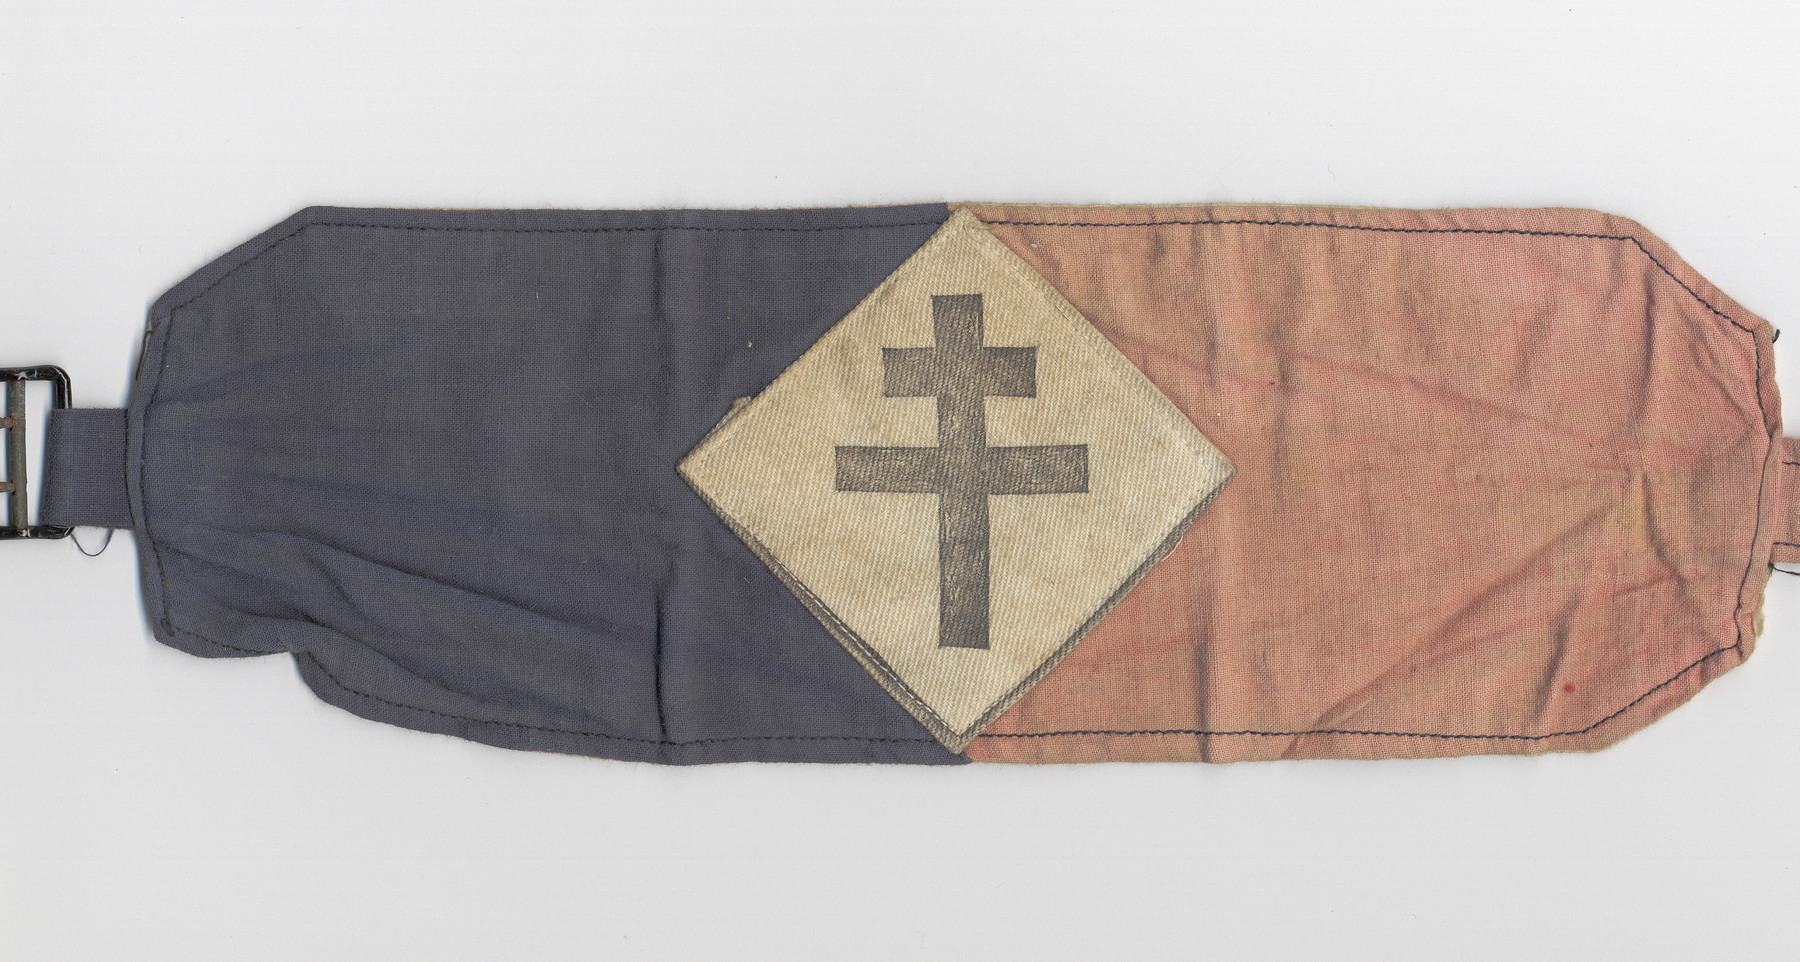 Armband with the Croix de Lorraine issued after the war to indicate the bearer had been in the resistance.